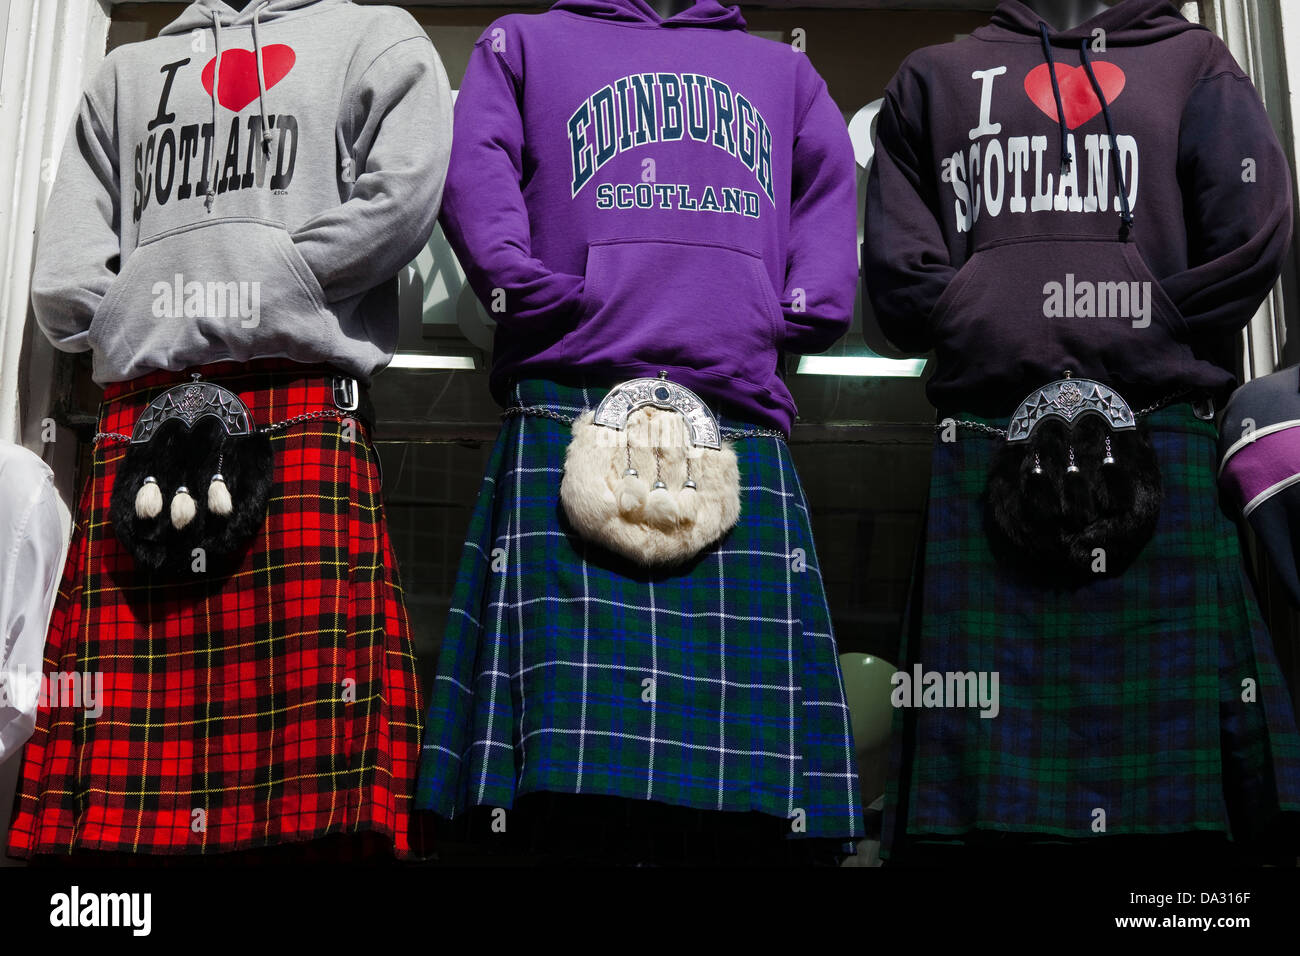 Manikins in a shop in Edinburgh displaying kilts, sporrans and sweat shirts that promote Edinburgh and Scotland, - Stock Image